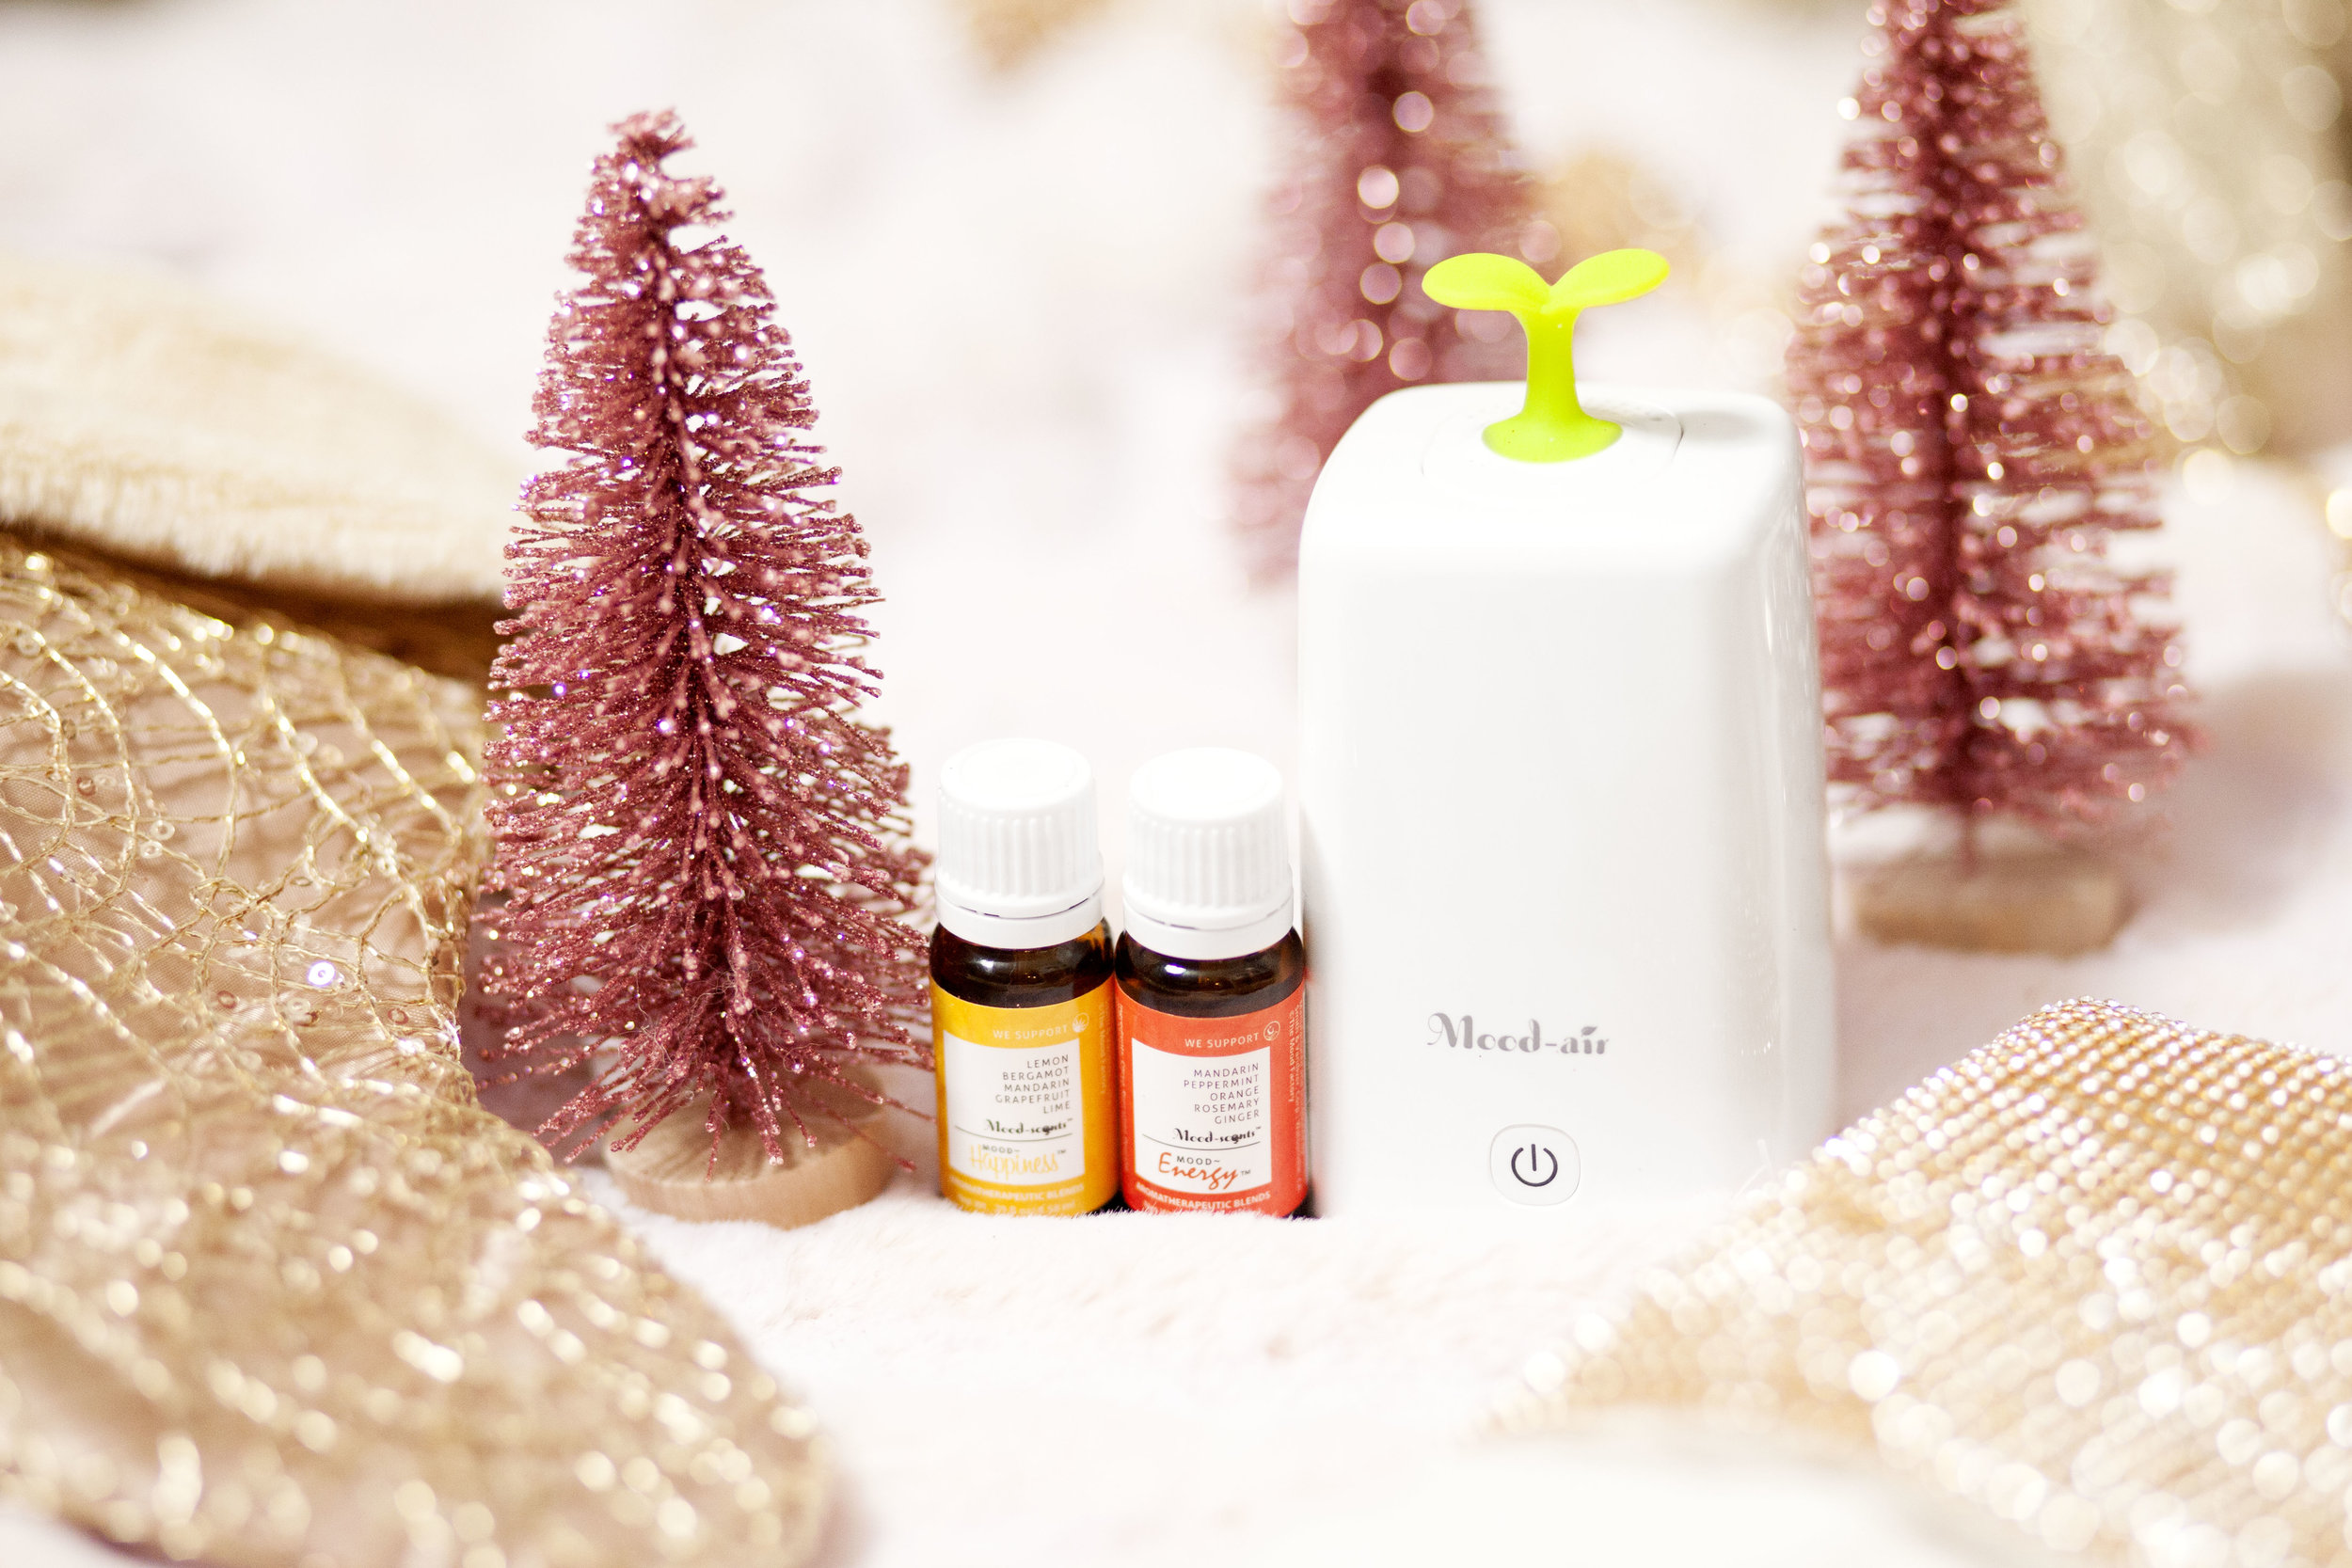 The Mood Factory Air Aromatherapy Mini Diffuser - The Gilded Bellini Holiday Gift Guide